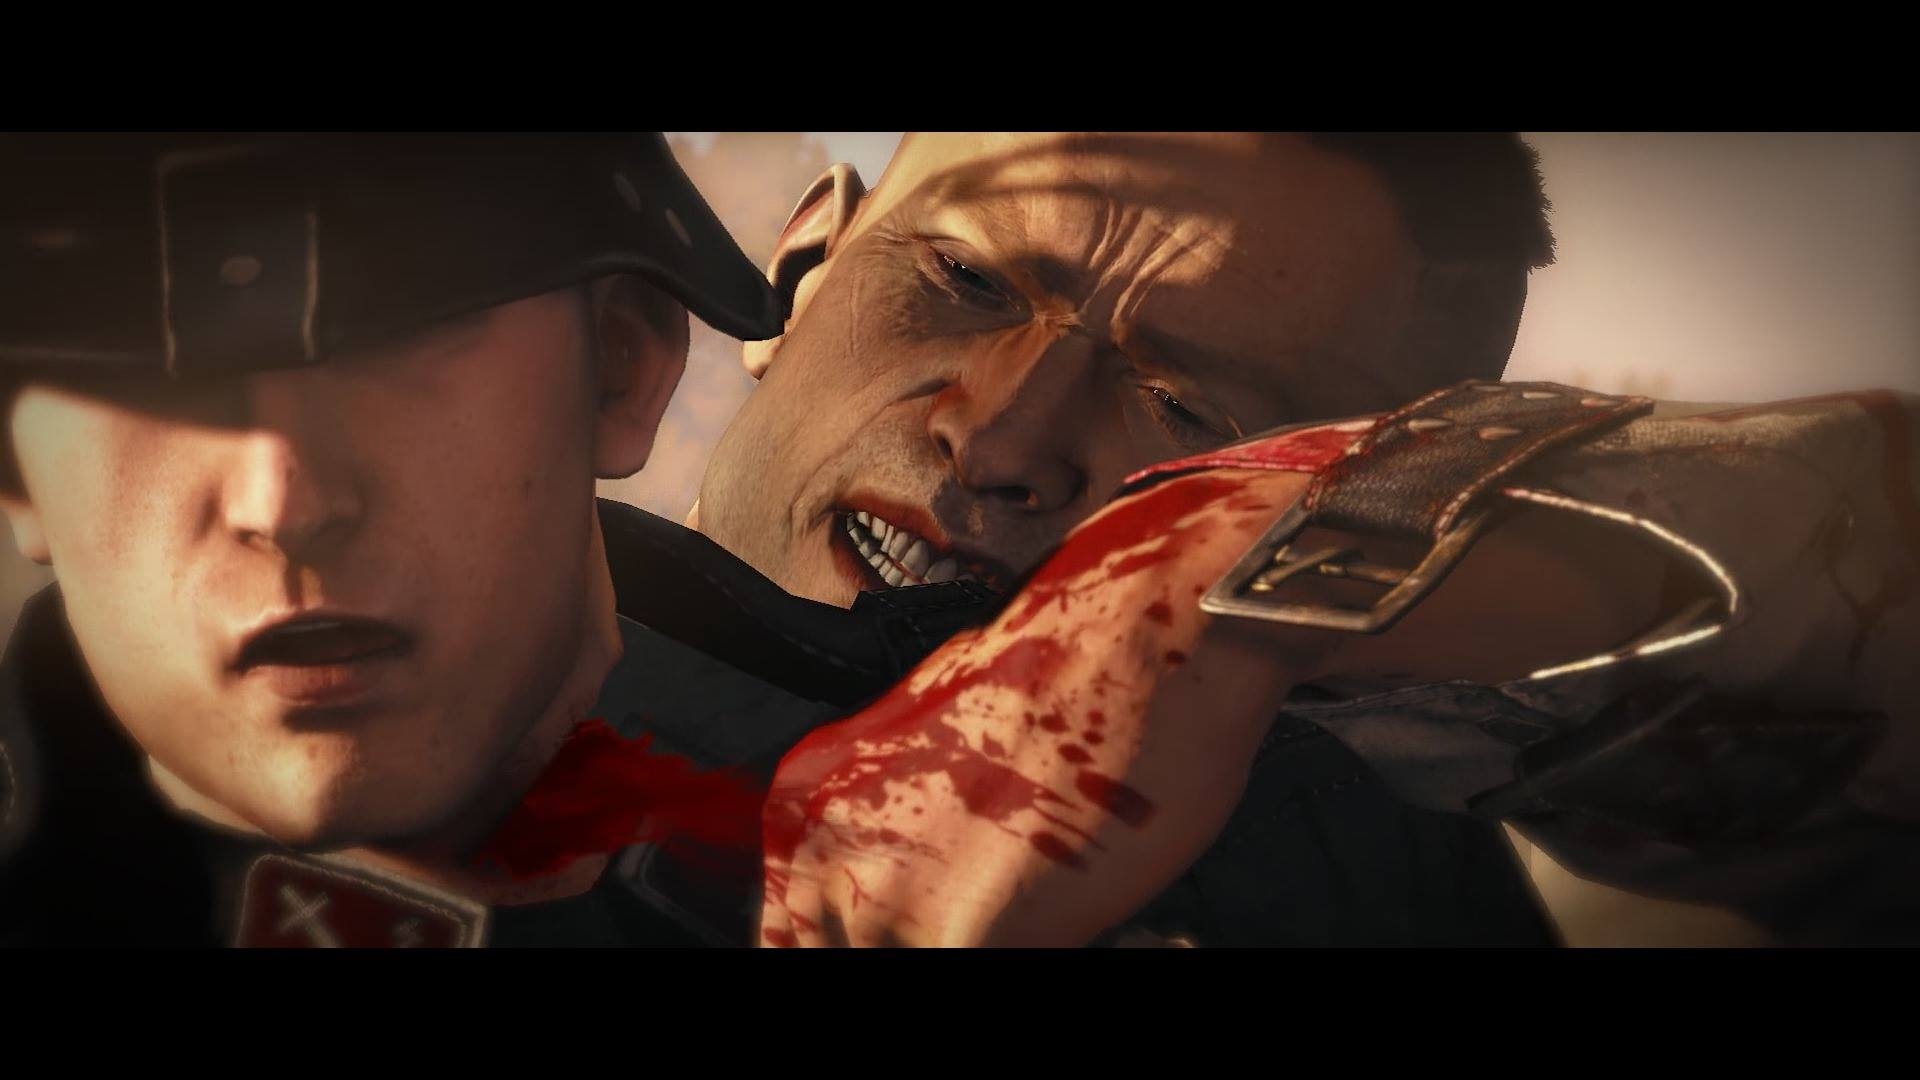 Don't be fooled, Blazkowicz is really a big softy in  Wolfenstein: The New Order